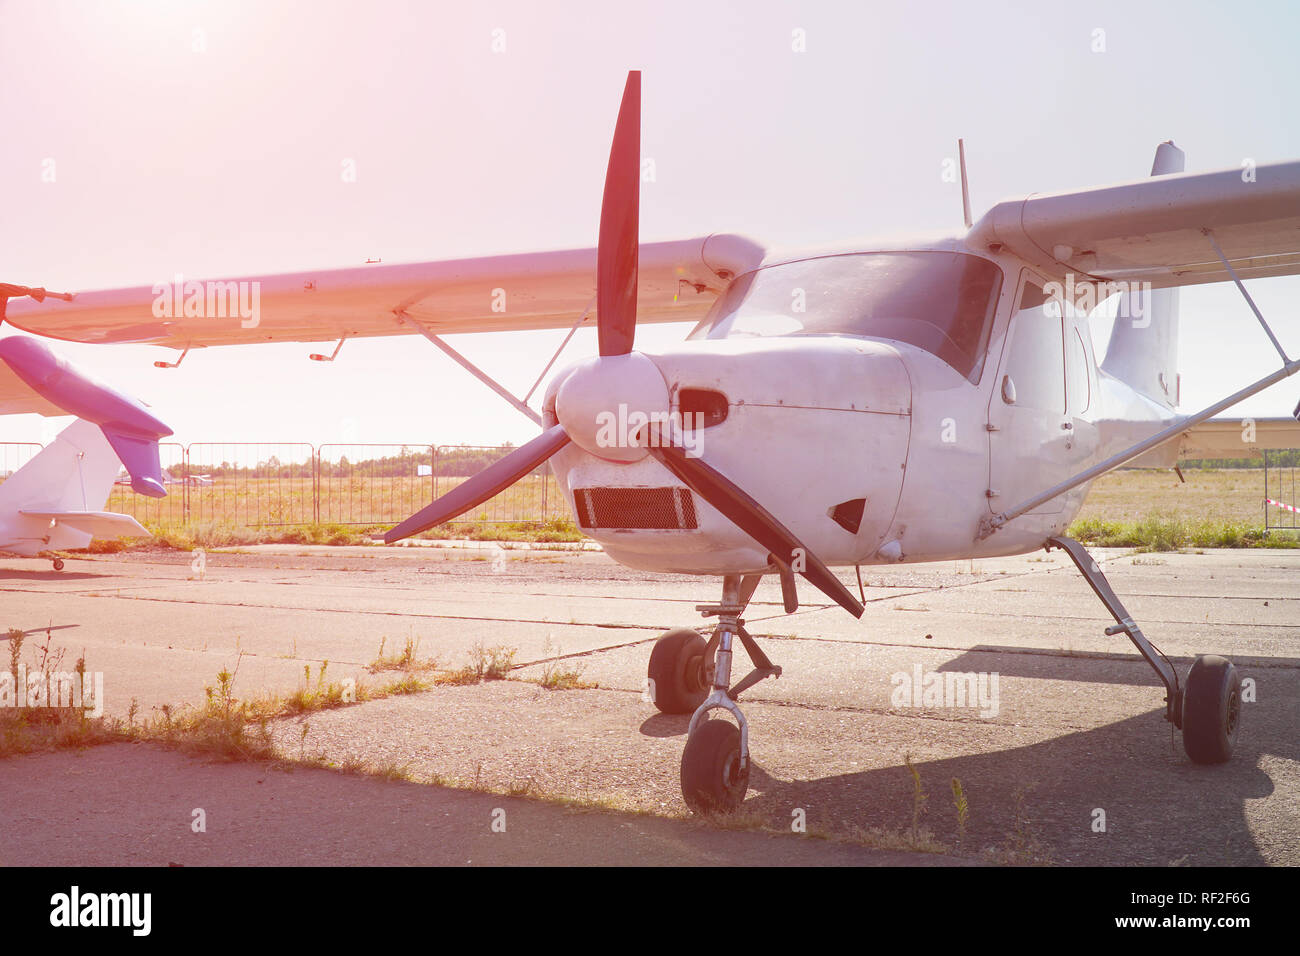 Light single-engine aircraft at the airport. Front view - Stock Image